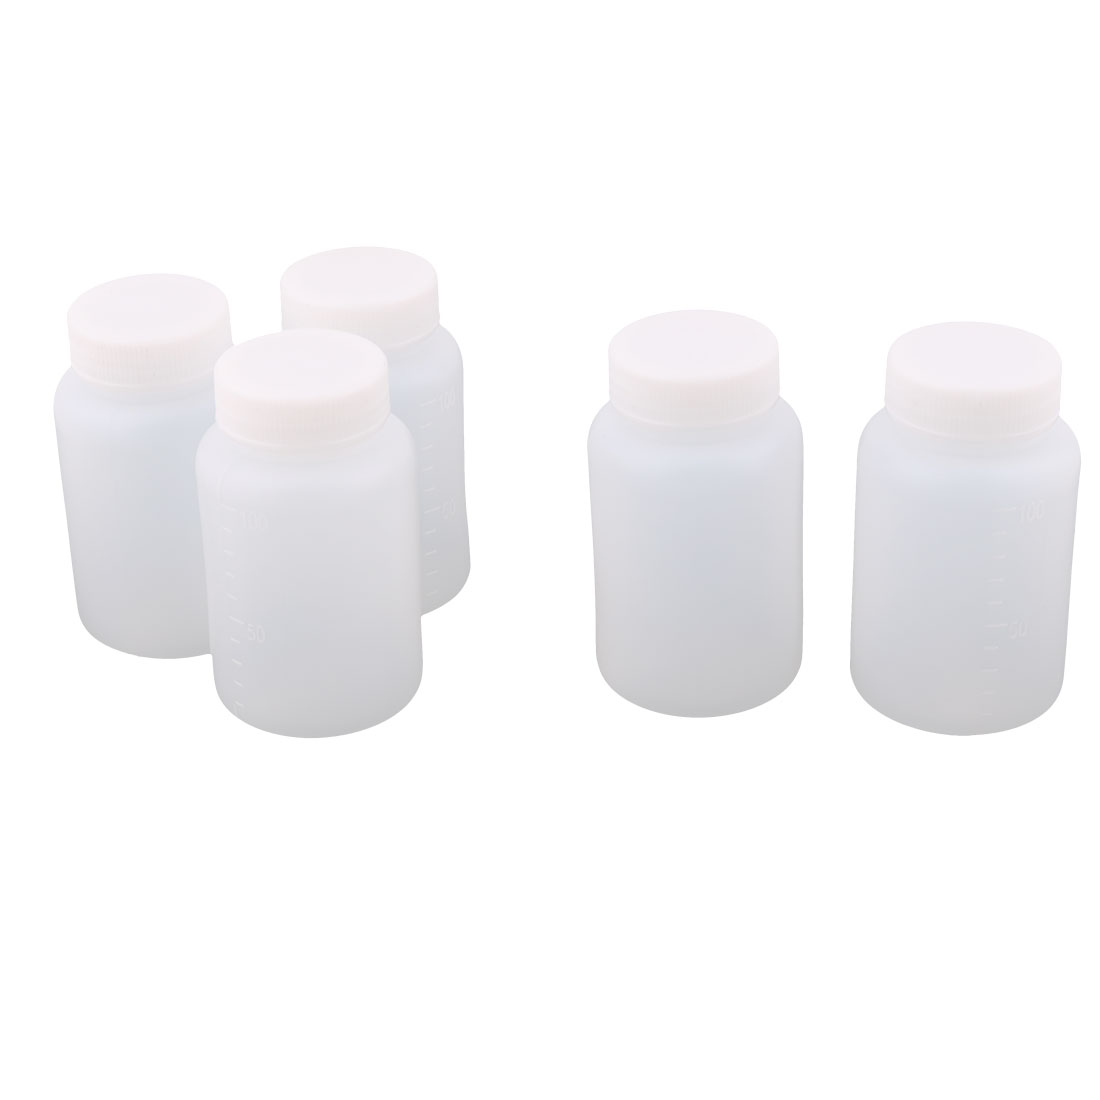 Household Kitchen Lab Plastic Water Liquid Bottle White 100ml Capacity 5pcs